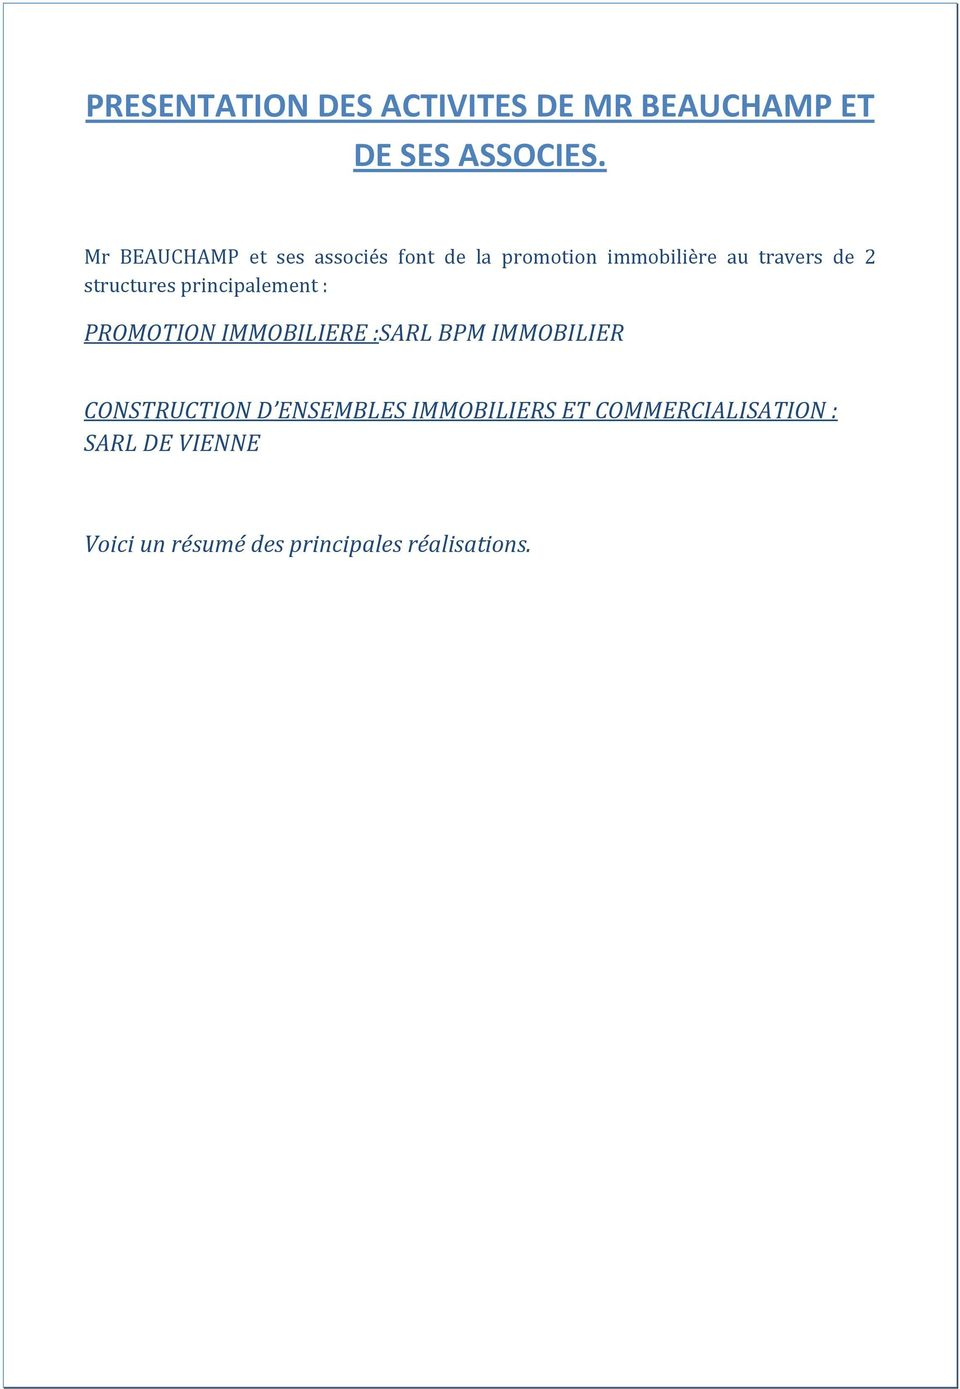 structures principalement : PROMOTION IMMOBILIERE :SARL BPM IMMOBILIER